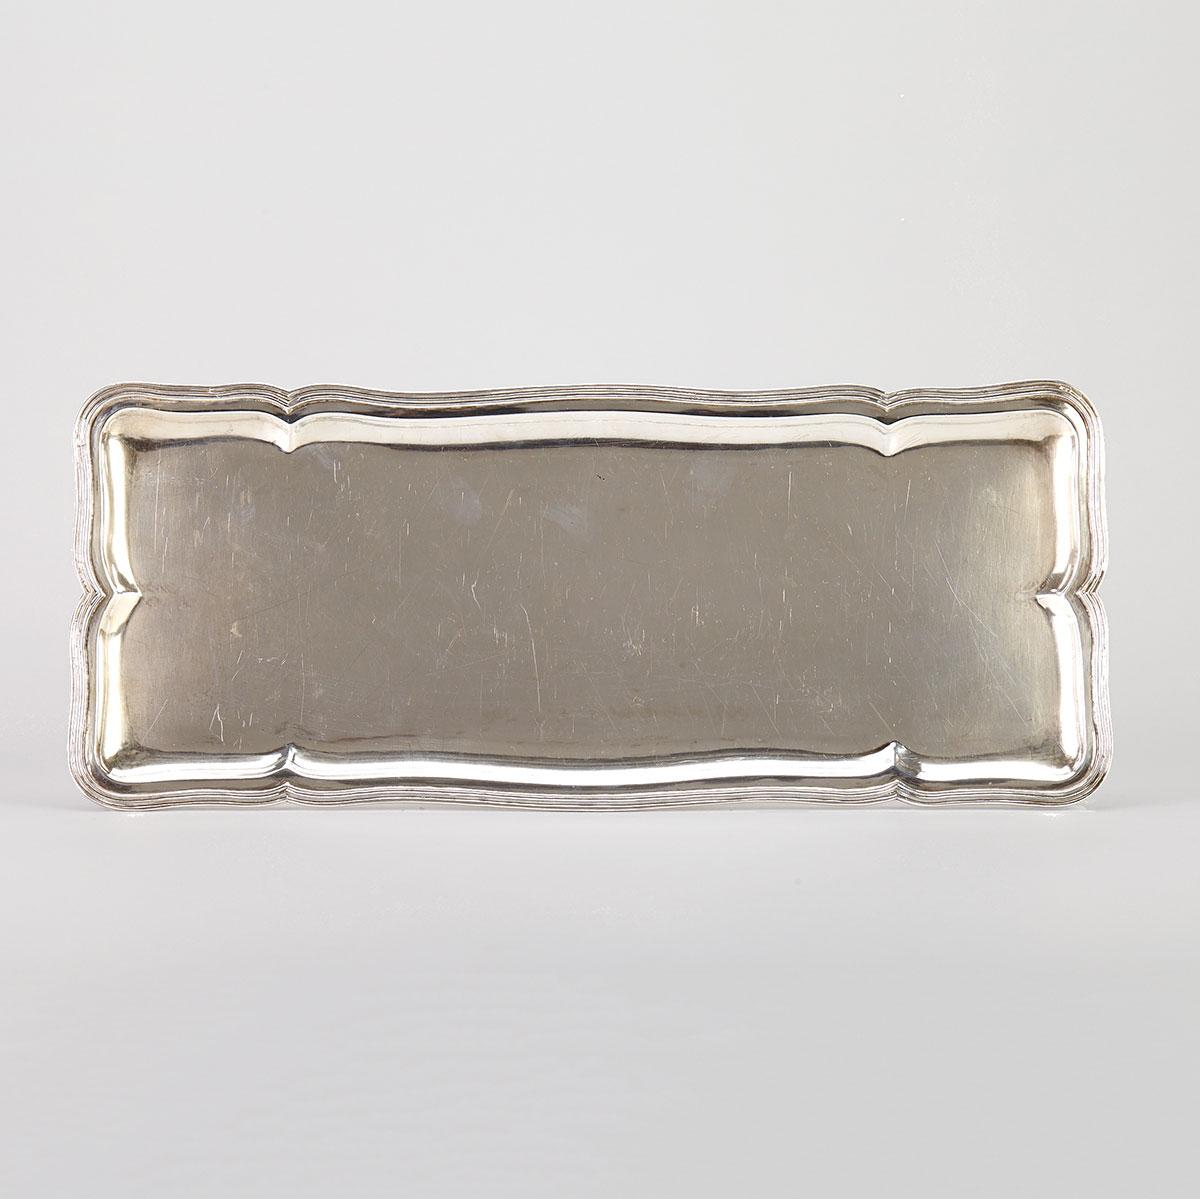 Columbian Silver Cocktail Tray, Bogota, mid-20th century